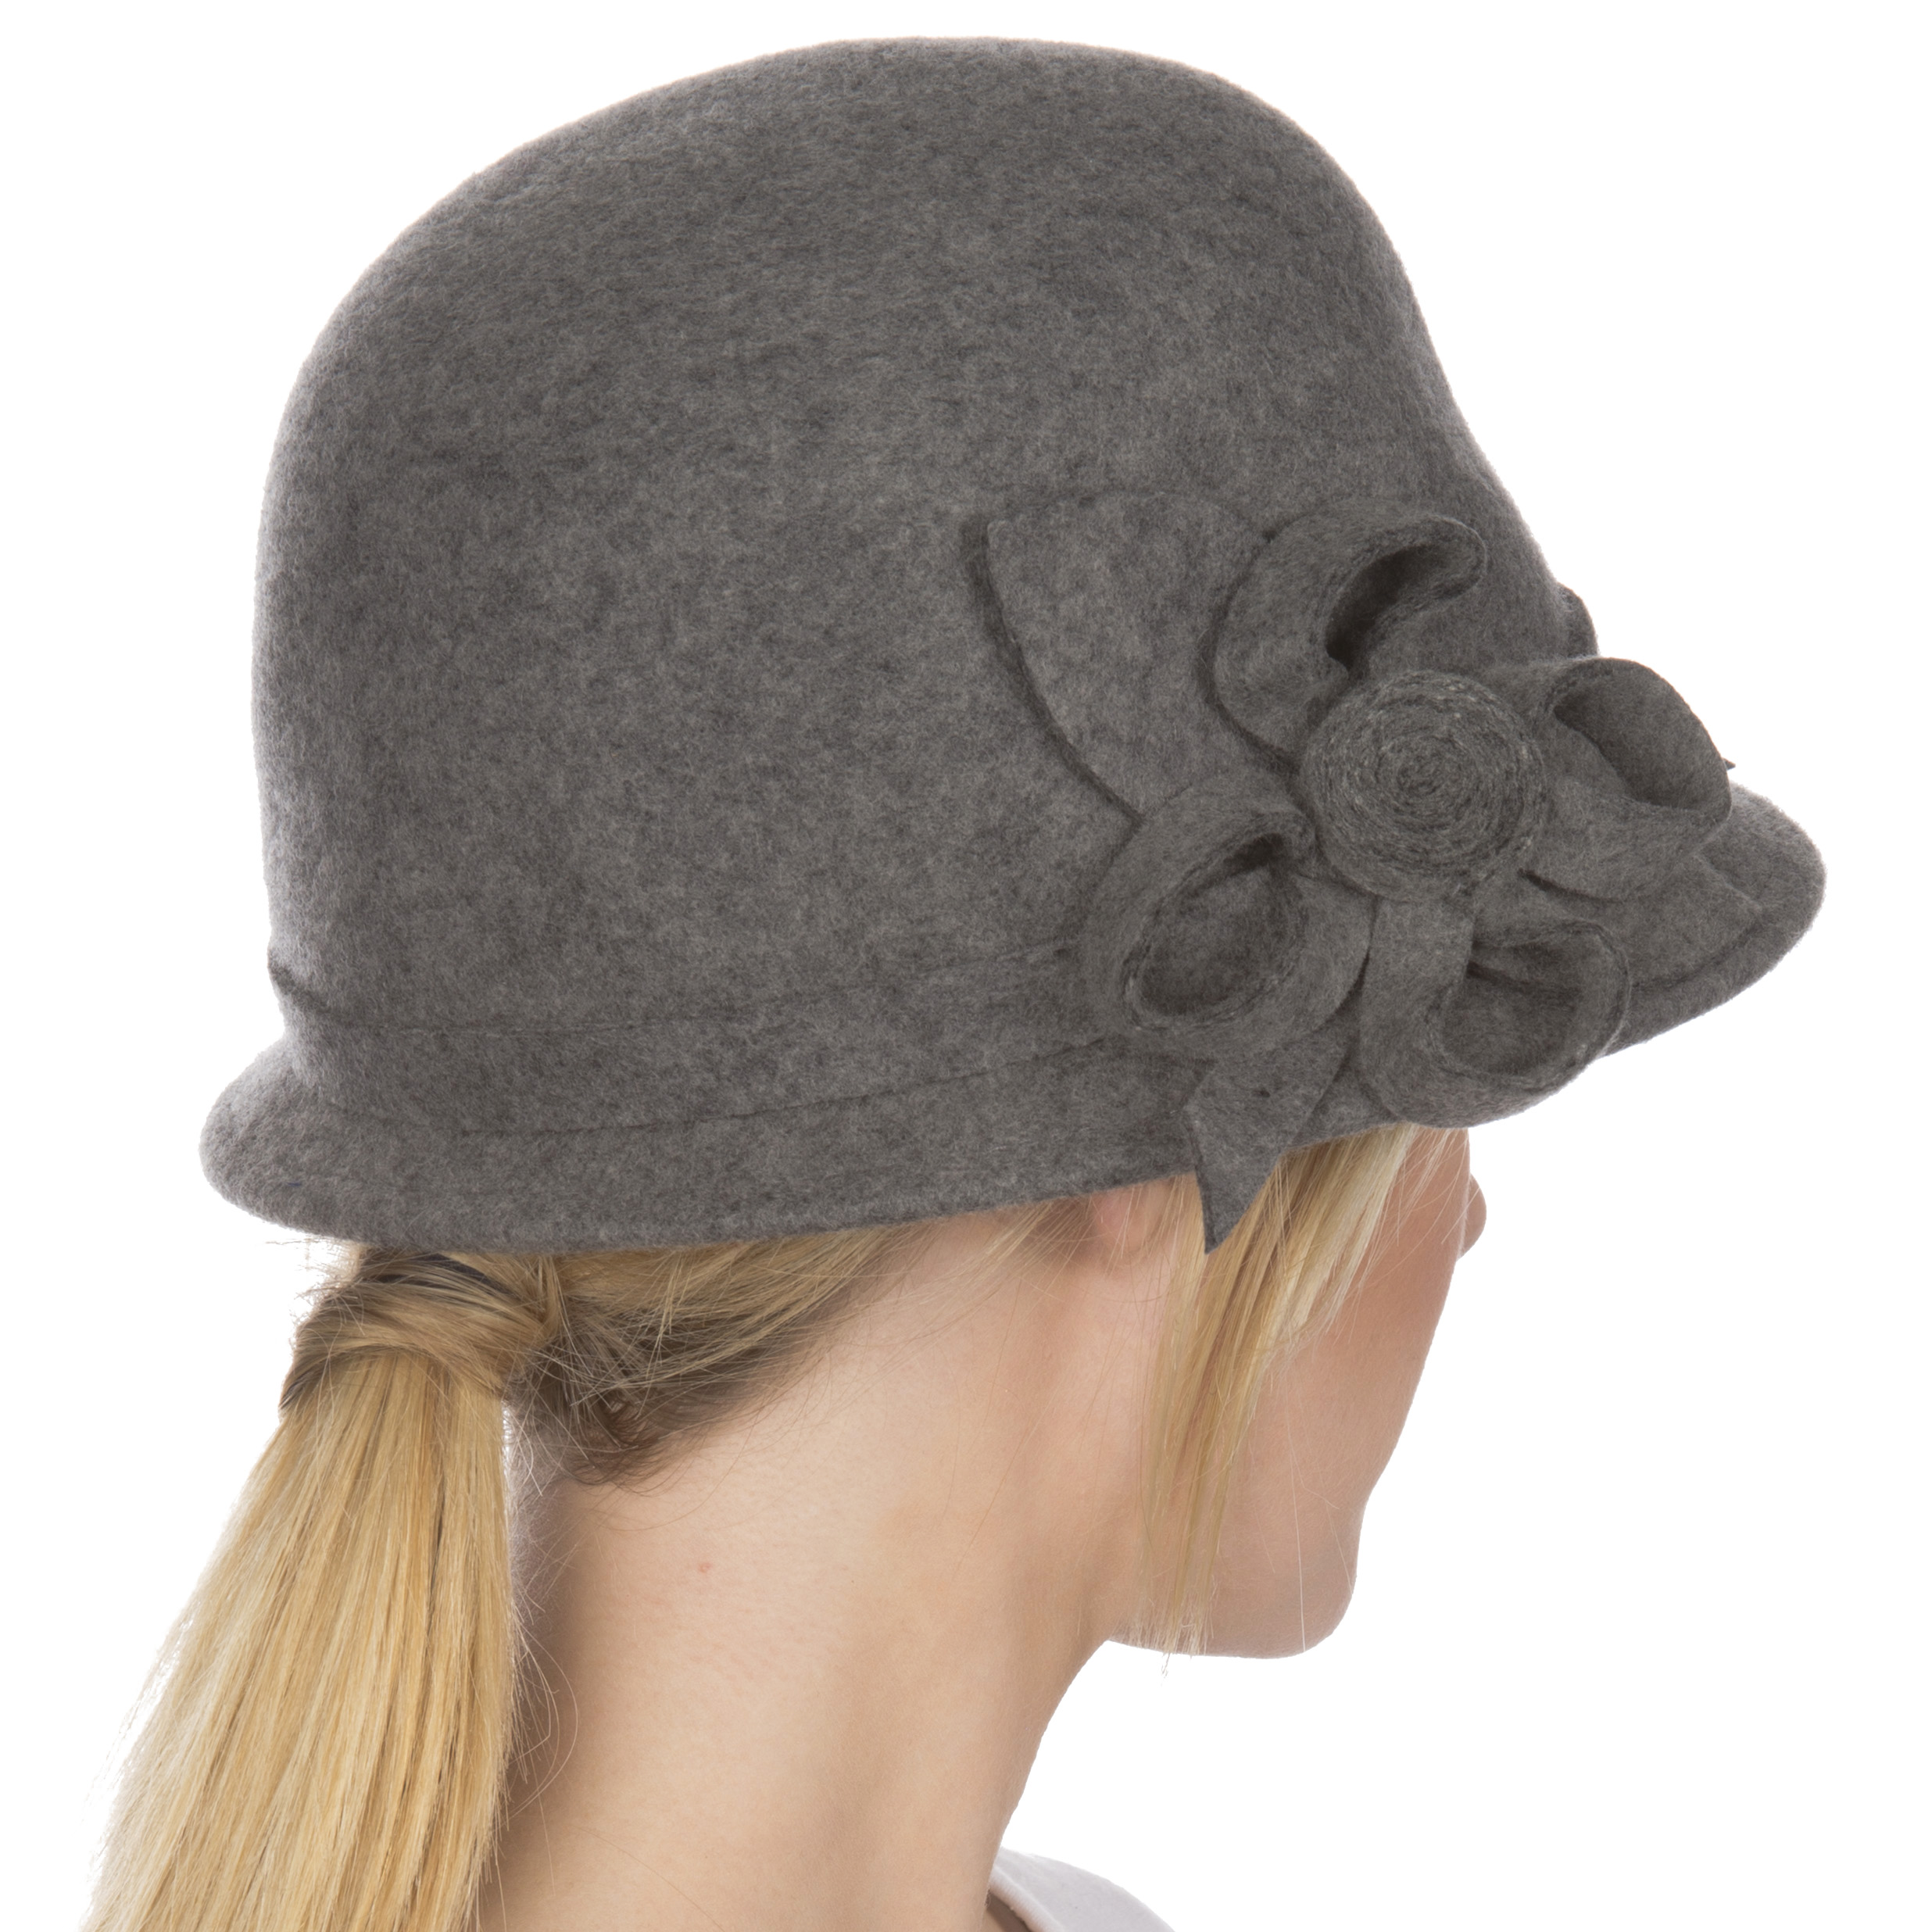 ea05ab33e Womens Bernadette Vintage Style 100% Wool Cloche Bucket Winter Hat with  Flower Accent - Charcoal/One Size